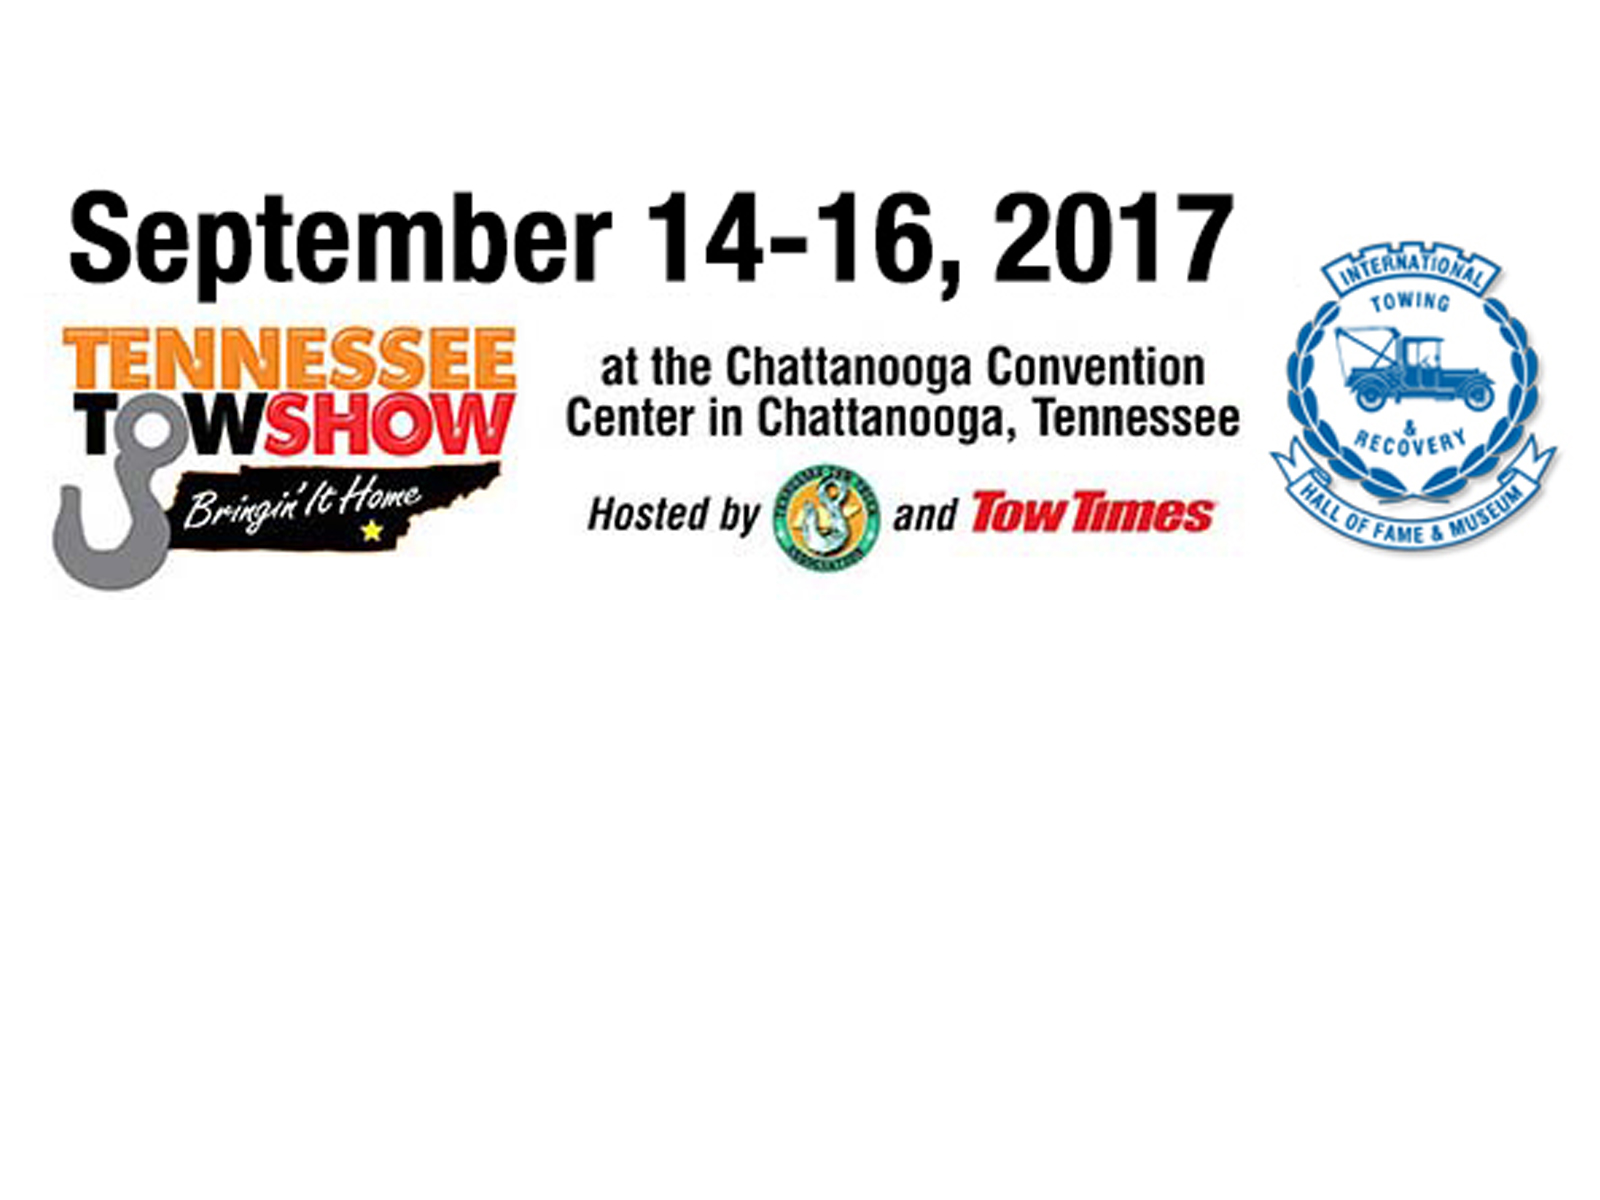 Tennessee Tow Show 2017